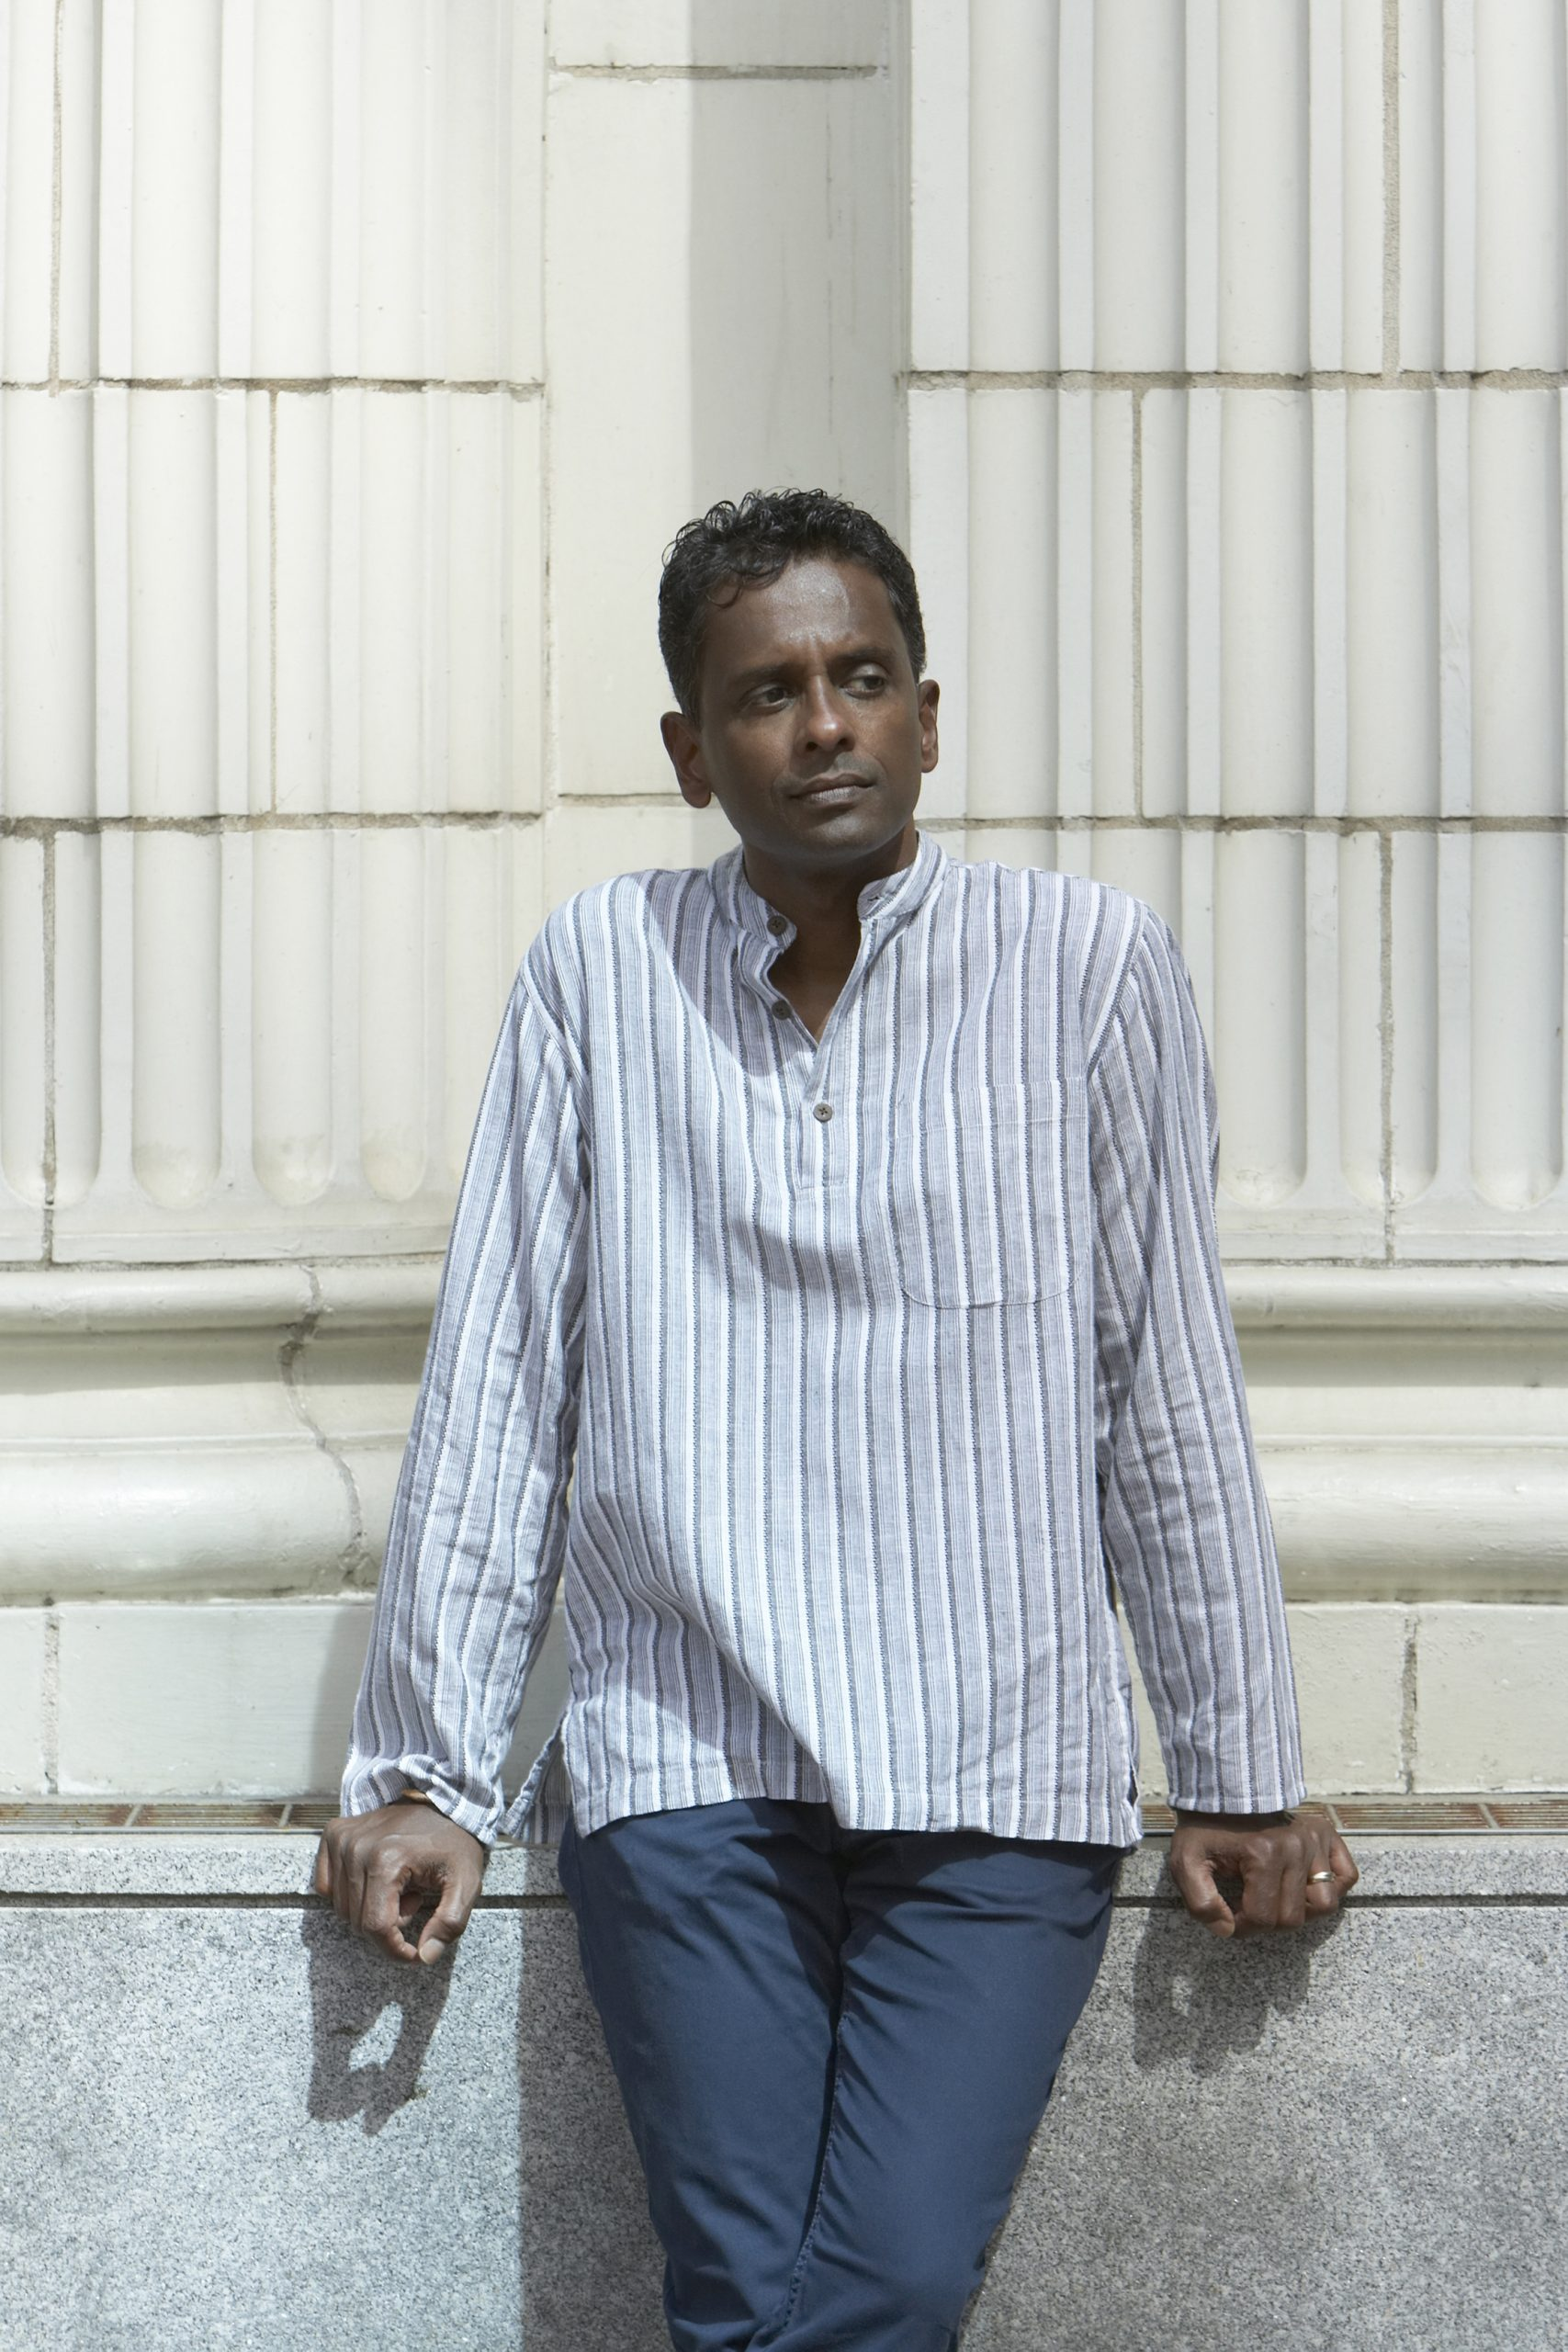 Portrait of author Shyam Selvadurai leaning against an ivory coloured wall in a striped shirt.